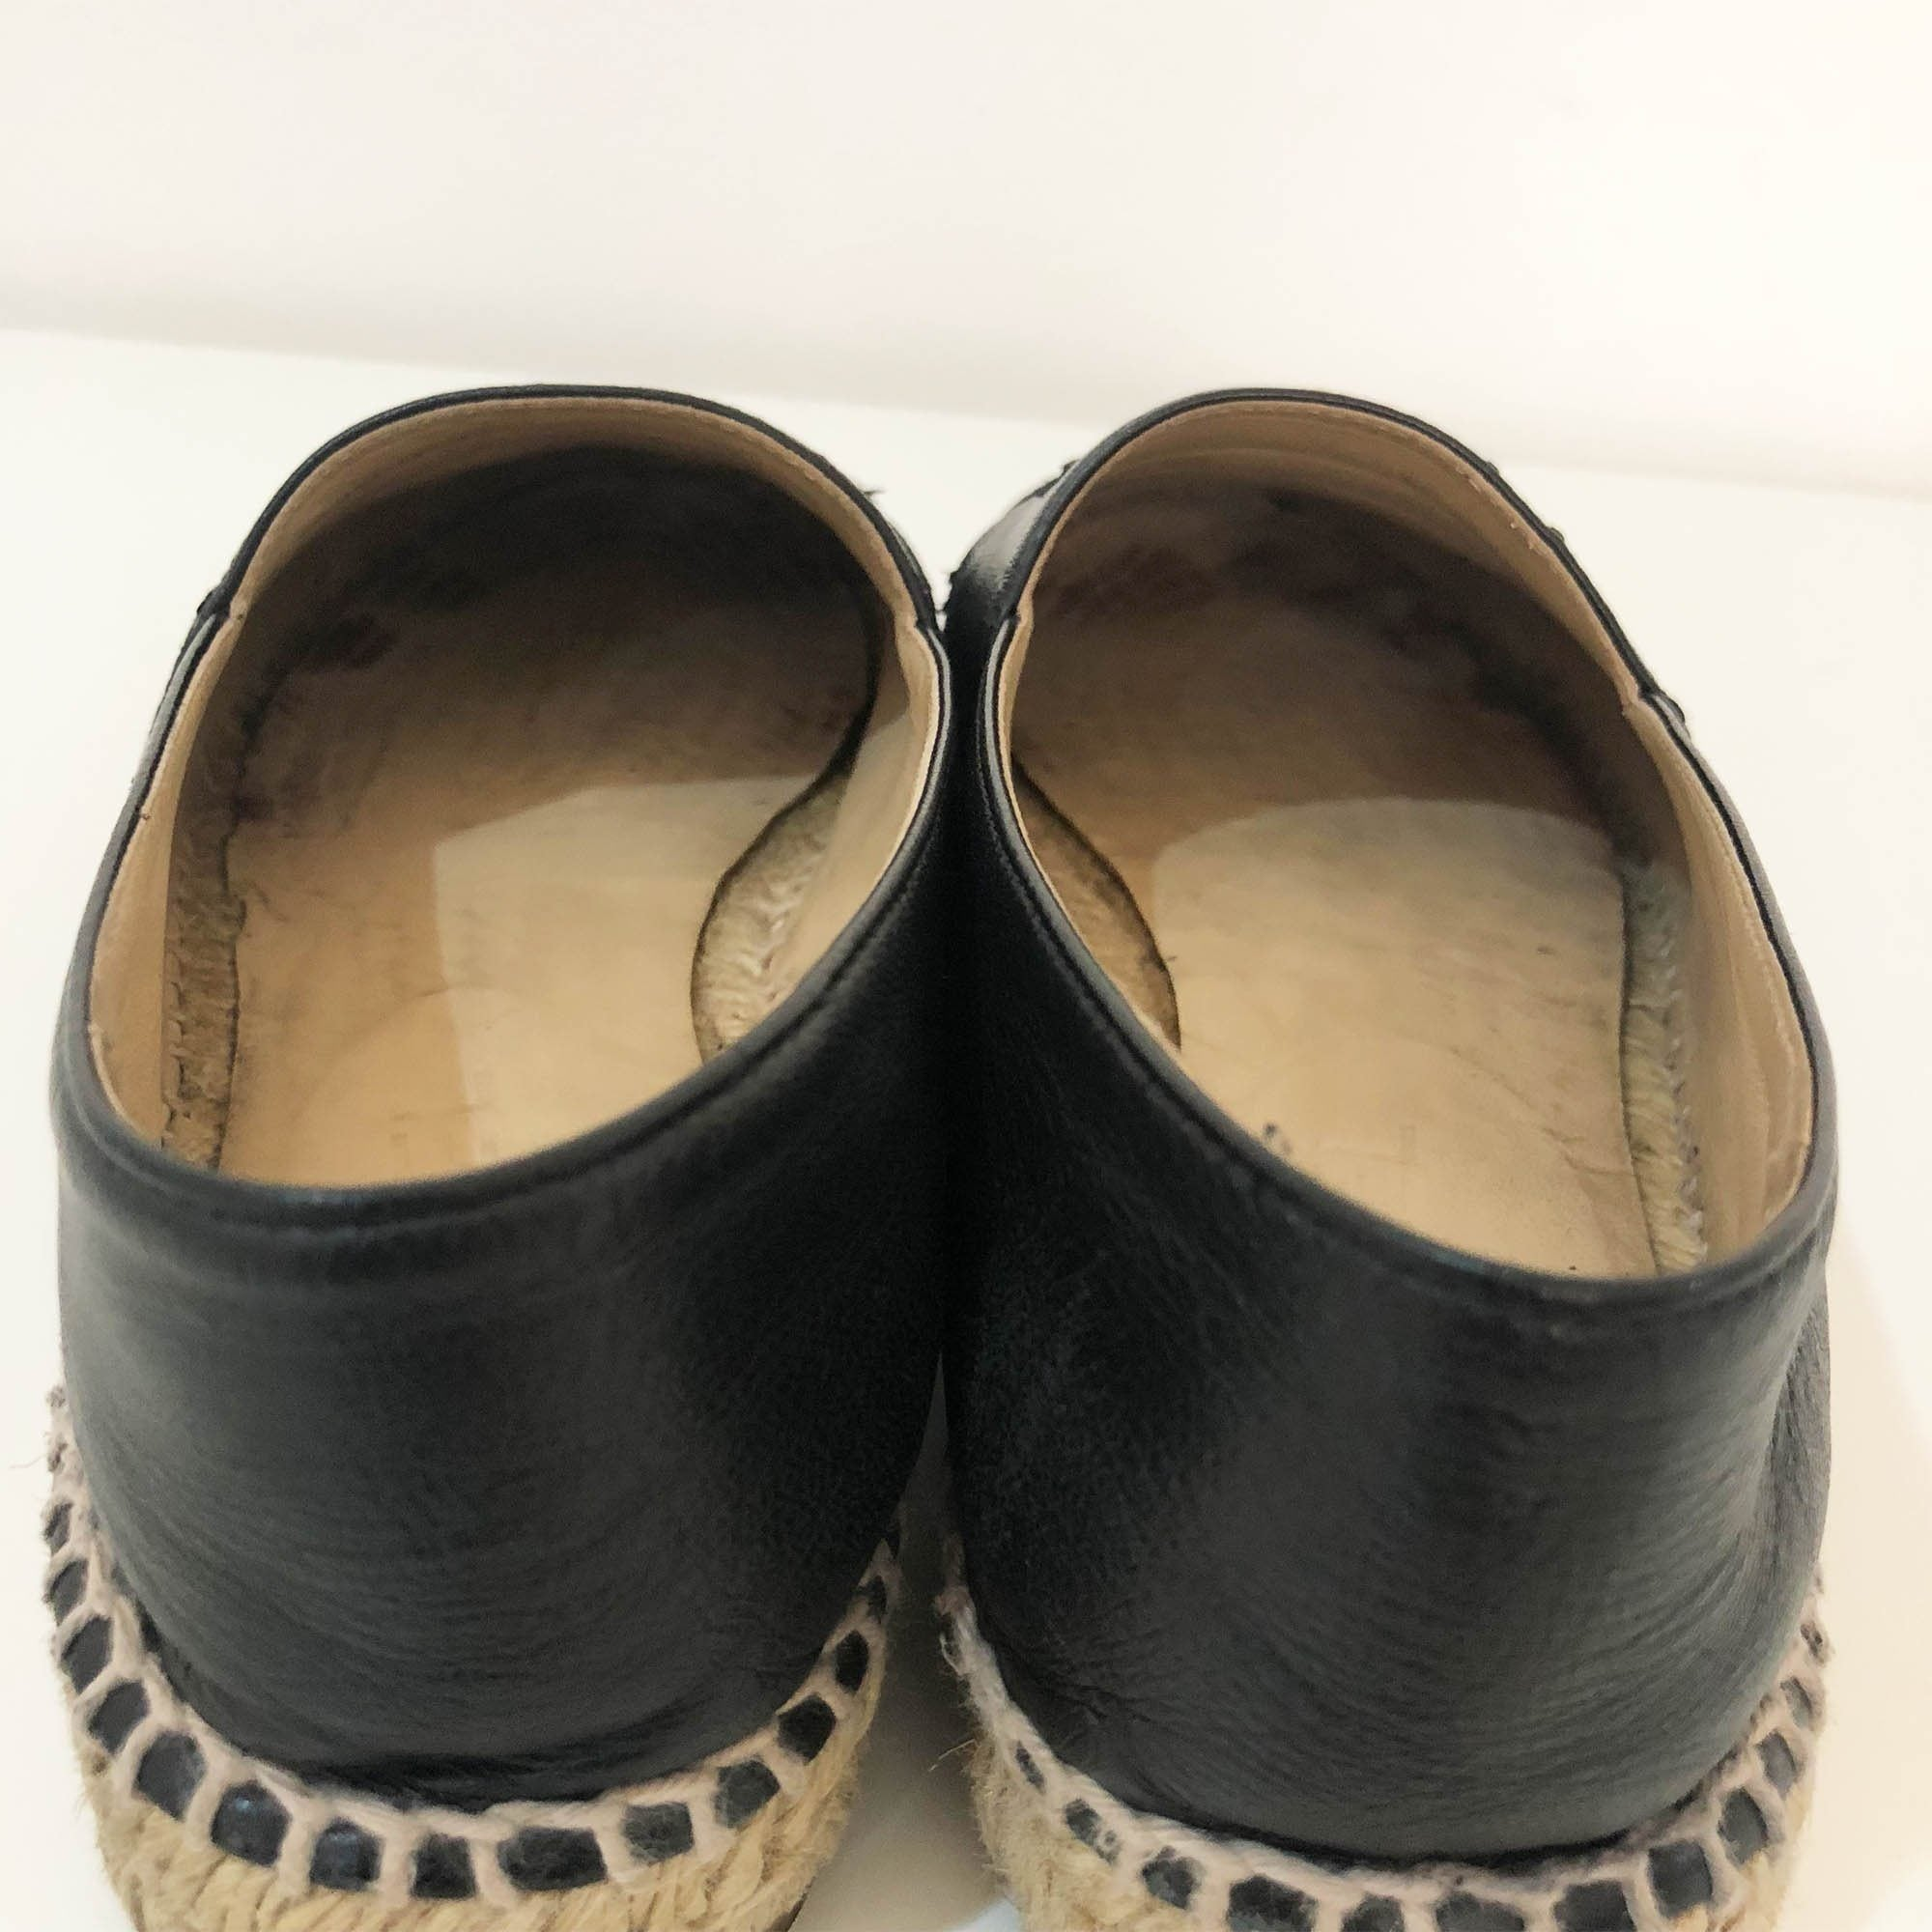 Chanel Black Leather Espadrilles